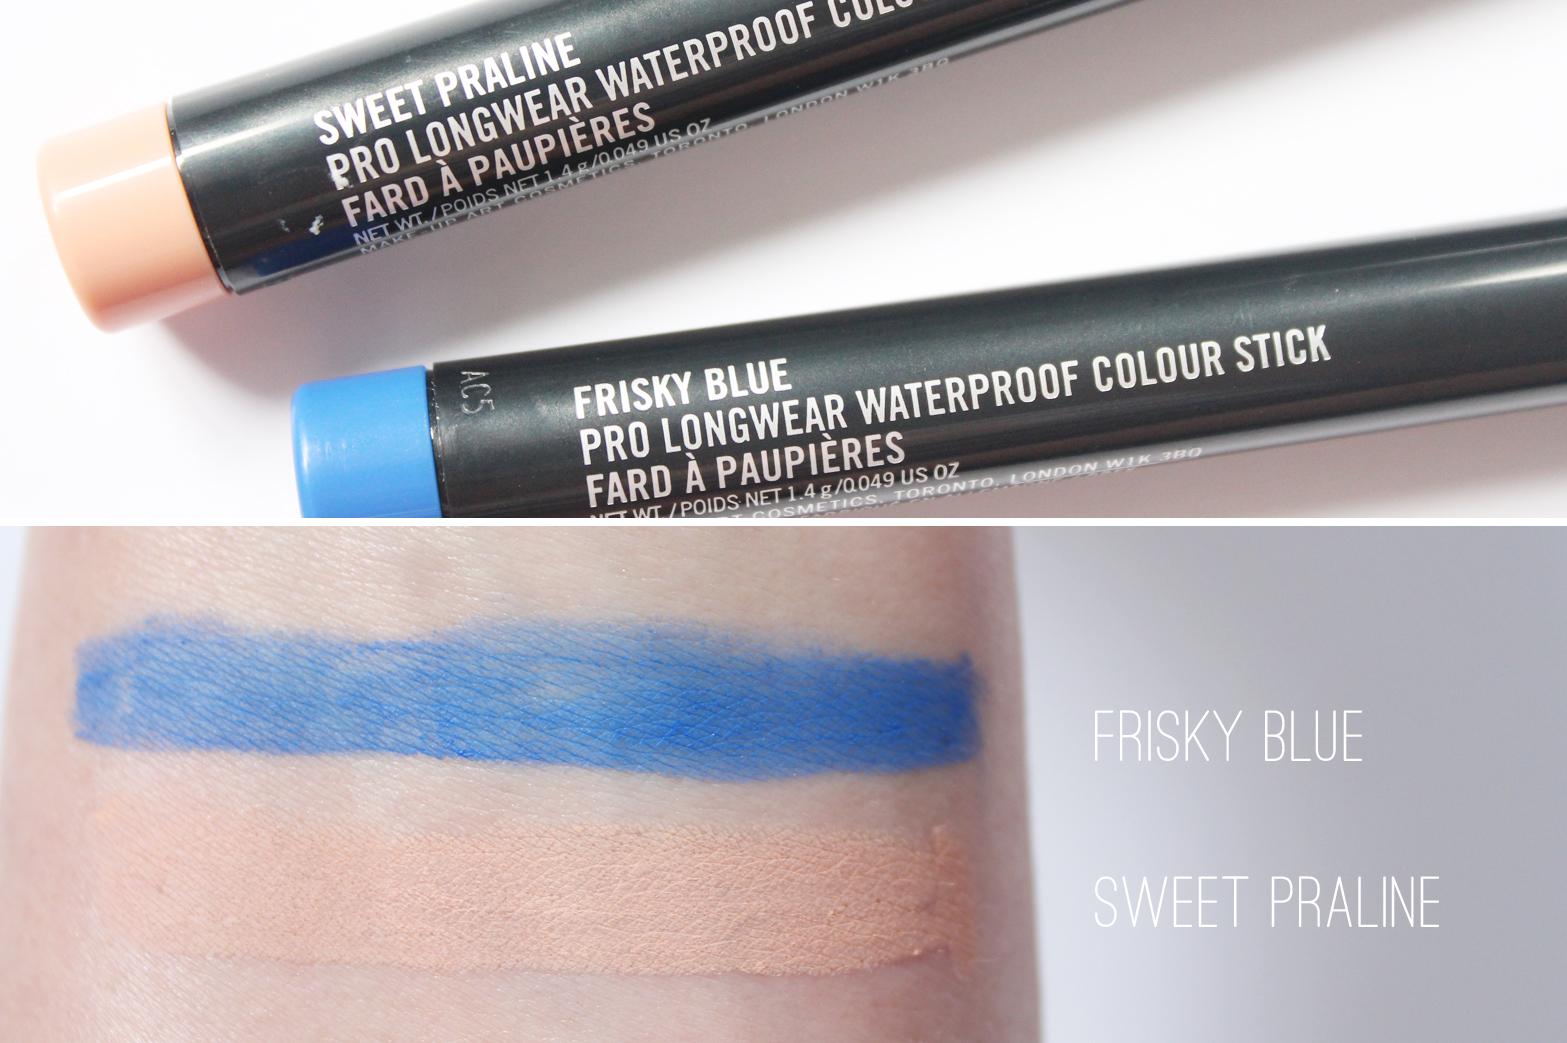 M.A.C | Pro Longwear Waterproof Colour Stick + Eyes On Palettes - CassandraMyee